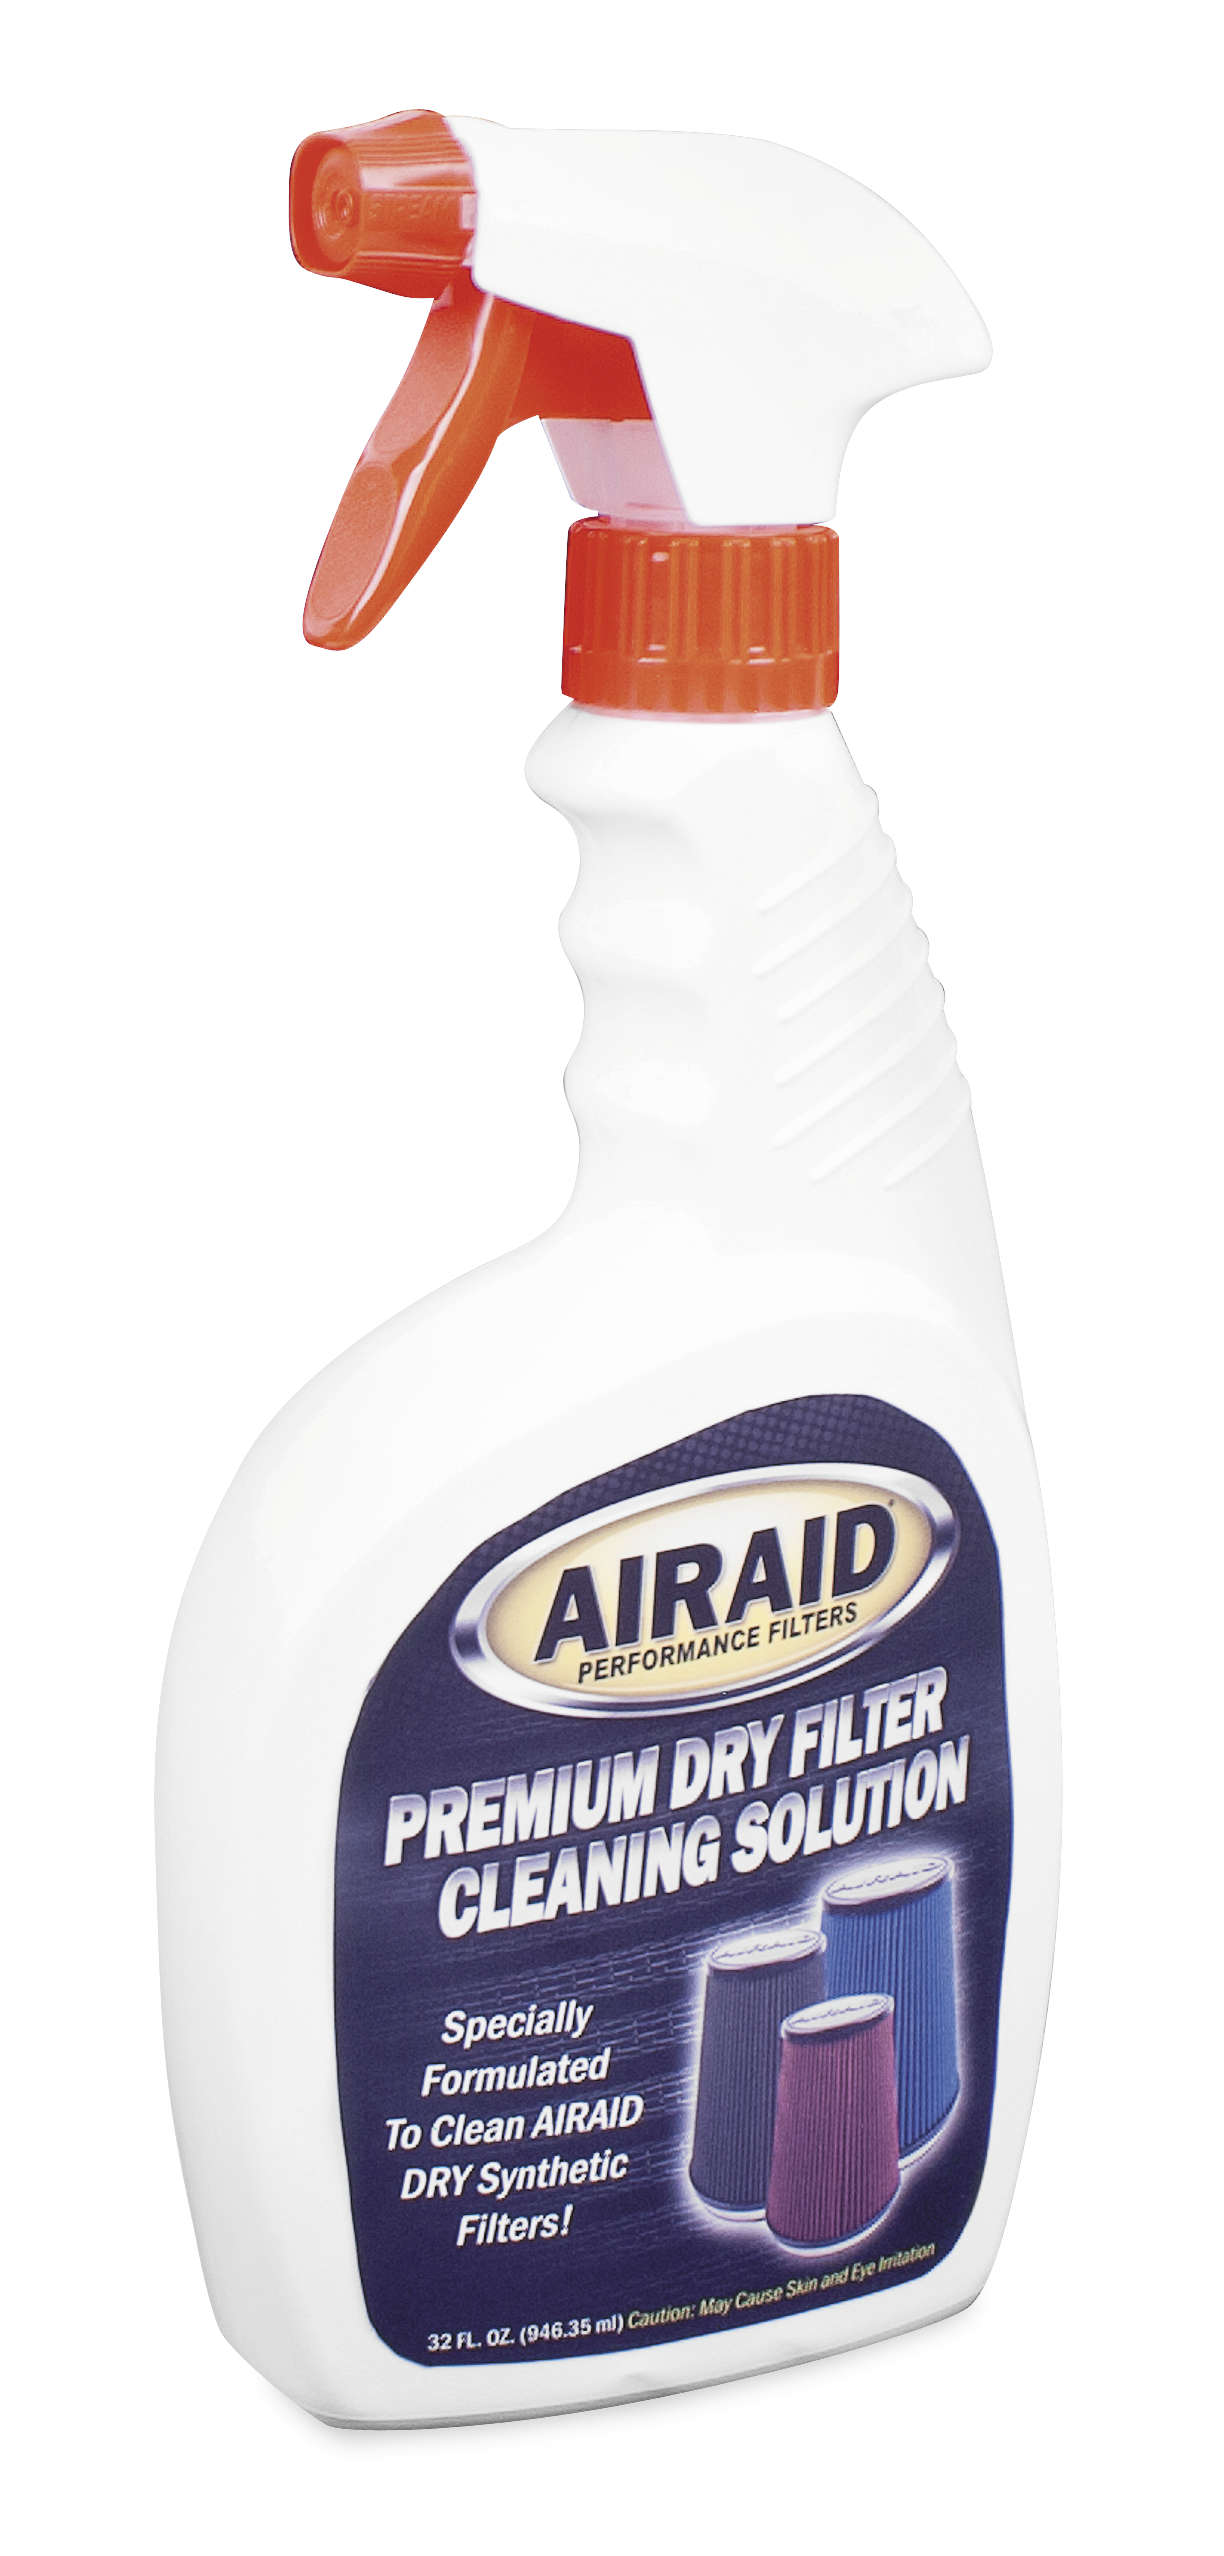 AIRAID FILTERS Cleaner for Dry Air Filters